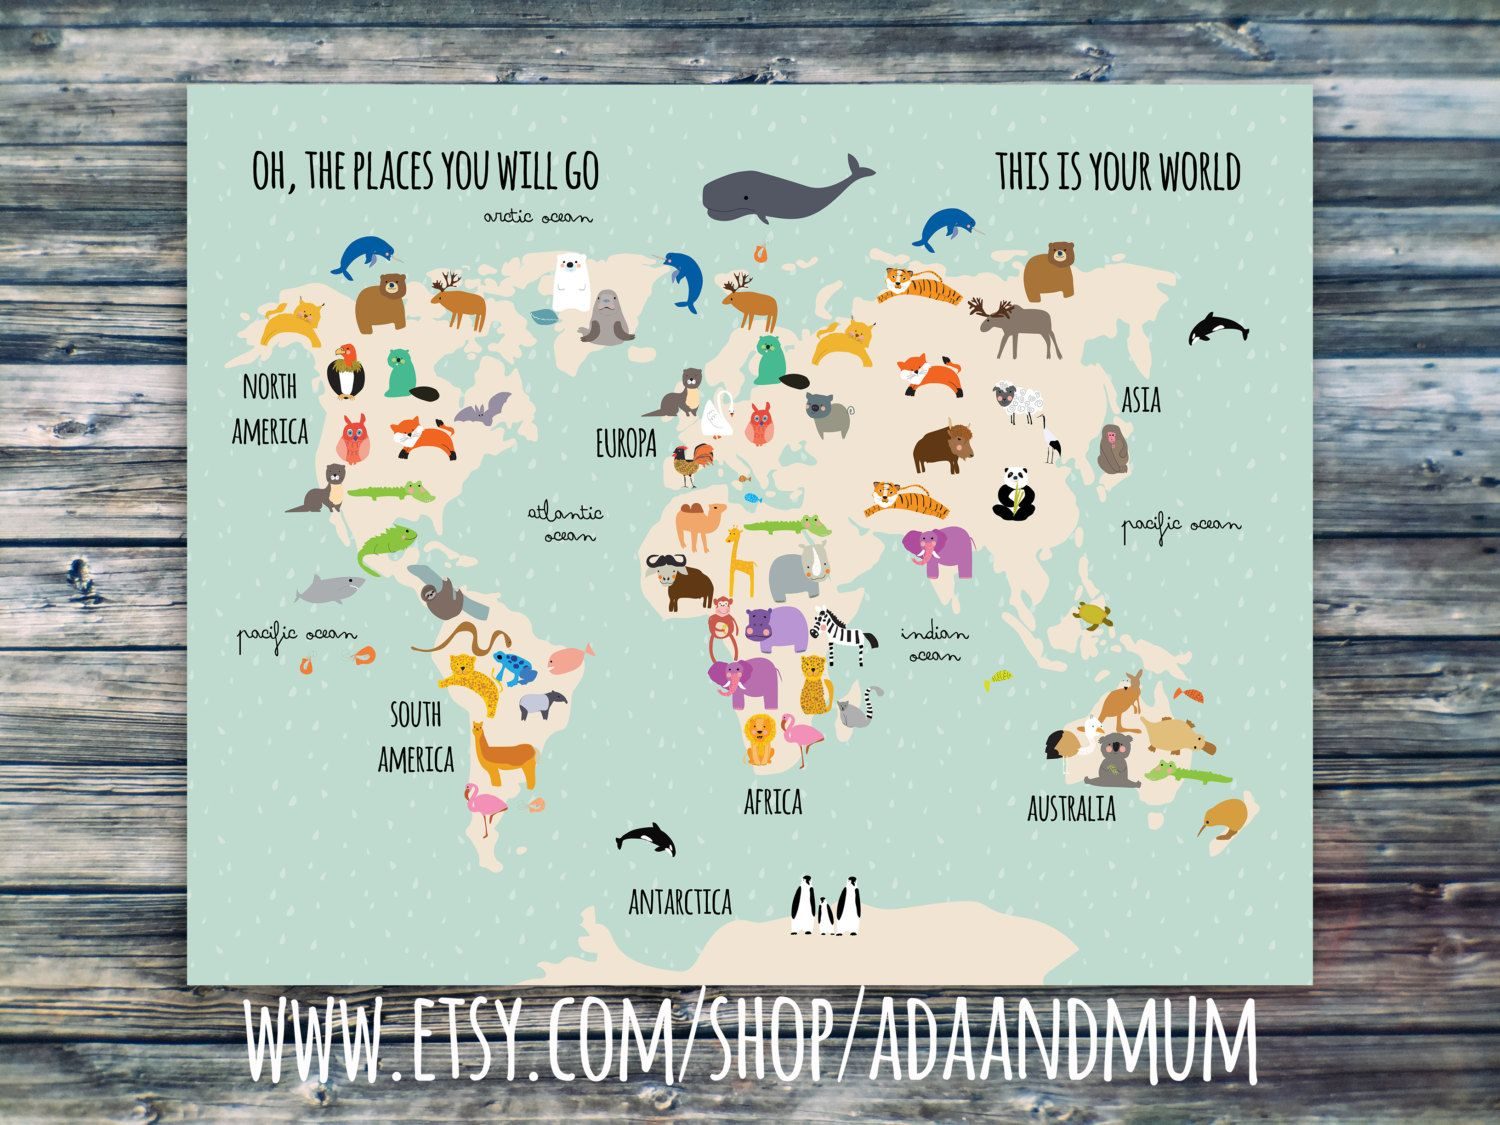 Animal planet world map for kids continents oceans animals world map with animals for kids continents oceans and animals gumiabroncs Images